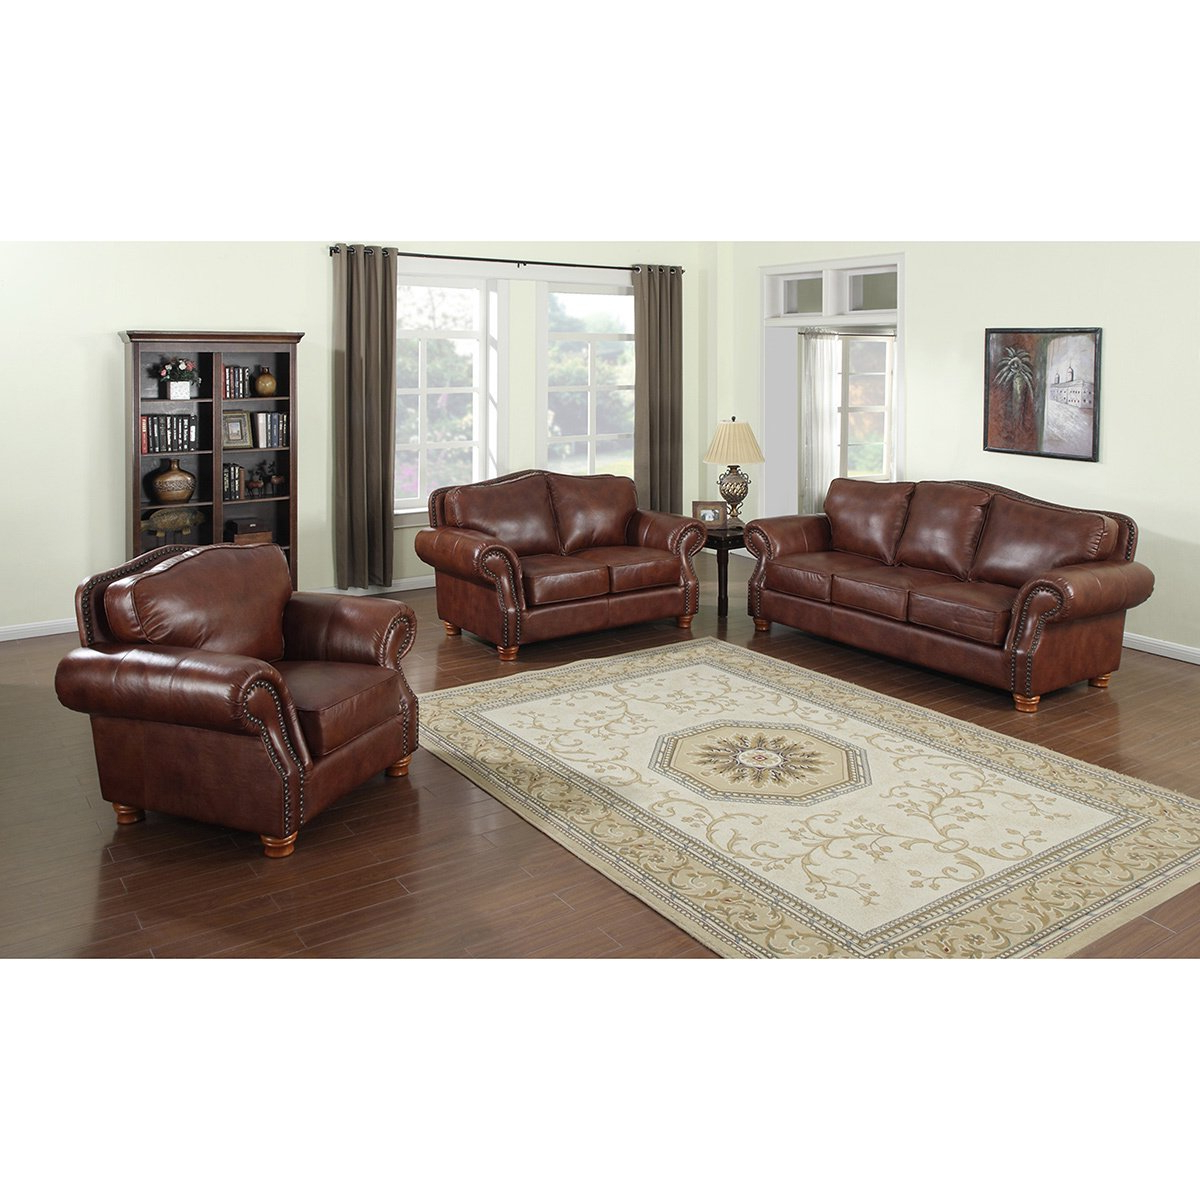 Sofa Loveseat And Chairs For Popular Shop Brandon Distressed Whiskey Italian Leather Sofa, Loveseat And (View 10 of 20)